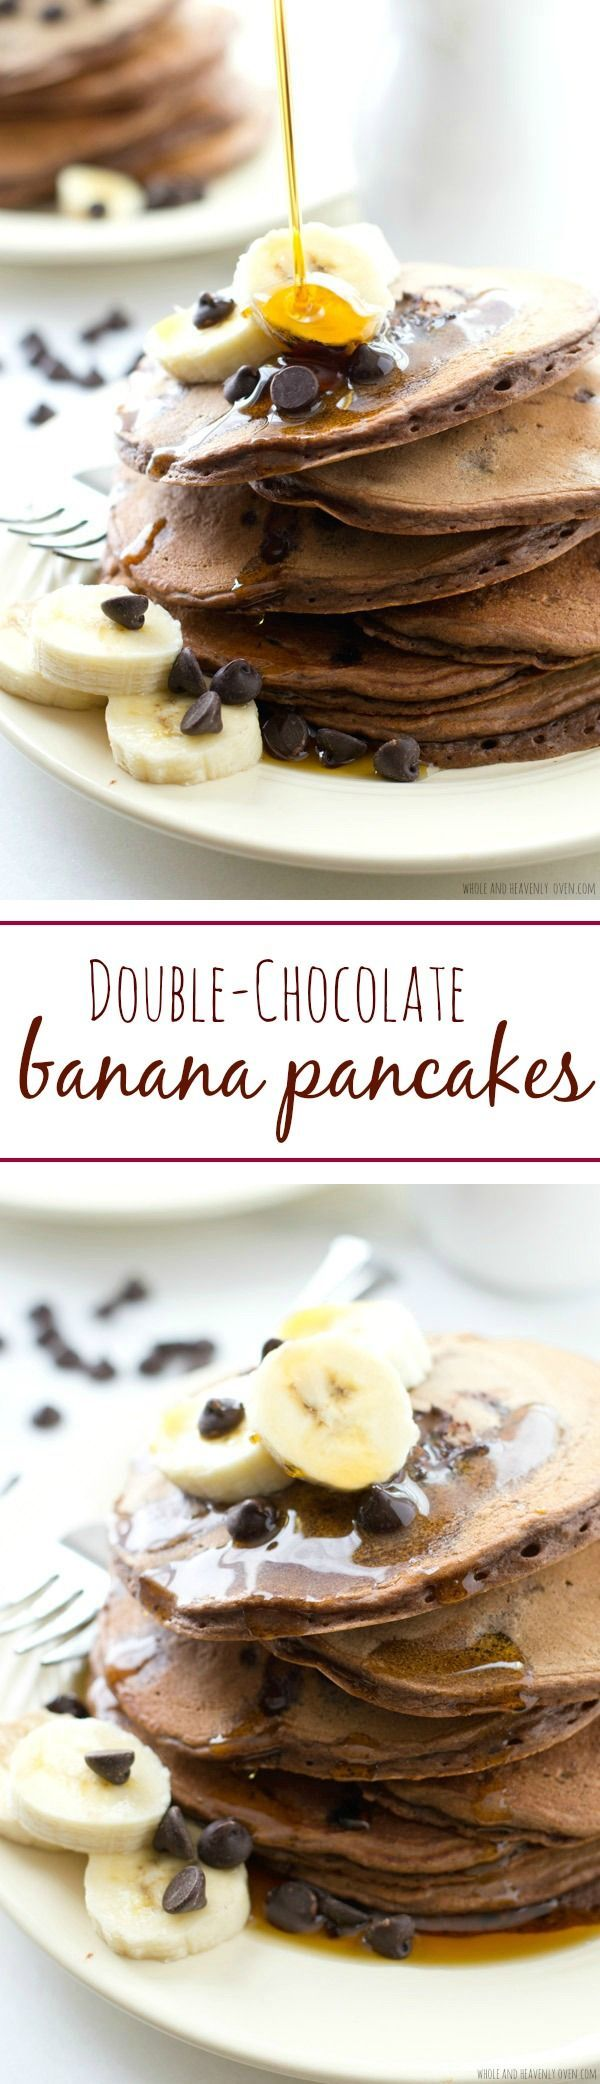 "Double Chocolate Banana Pancakes ~ These thick, fluffy pancakes are loaded with lots of banana flavor and a double-delight of chocolate---Your family will go ""bananas"" for these crowd-pleasing pancakes!"